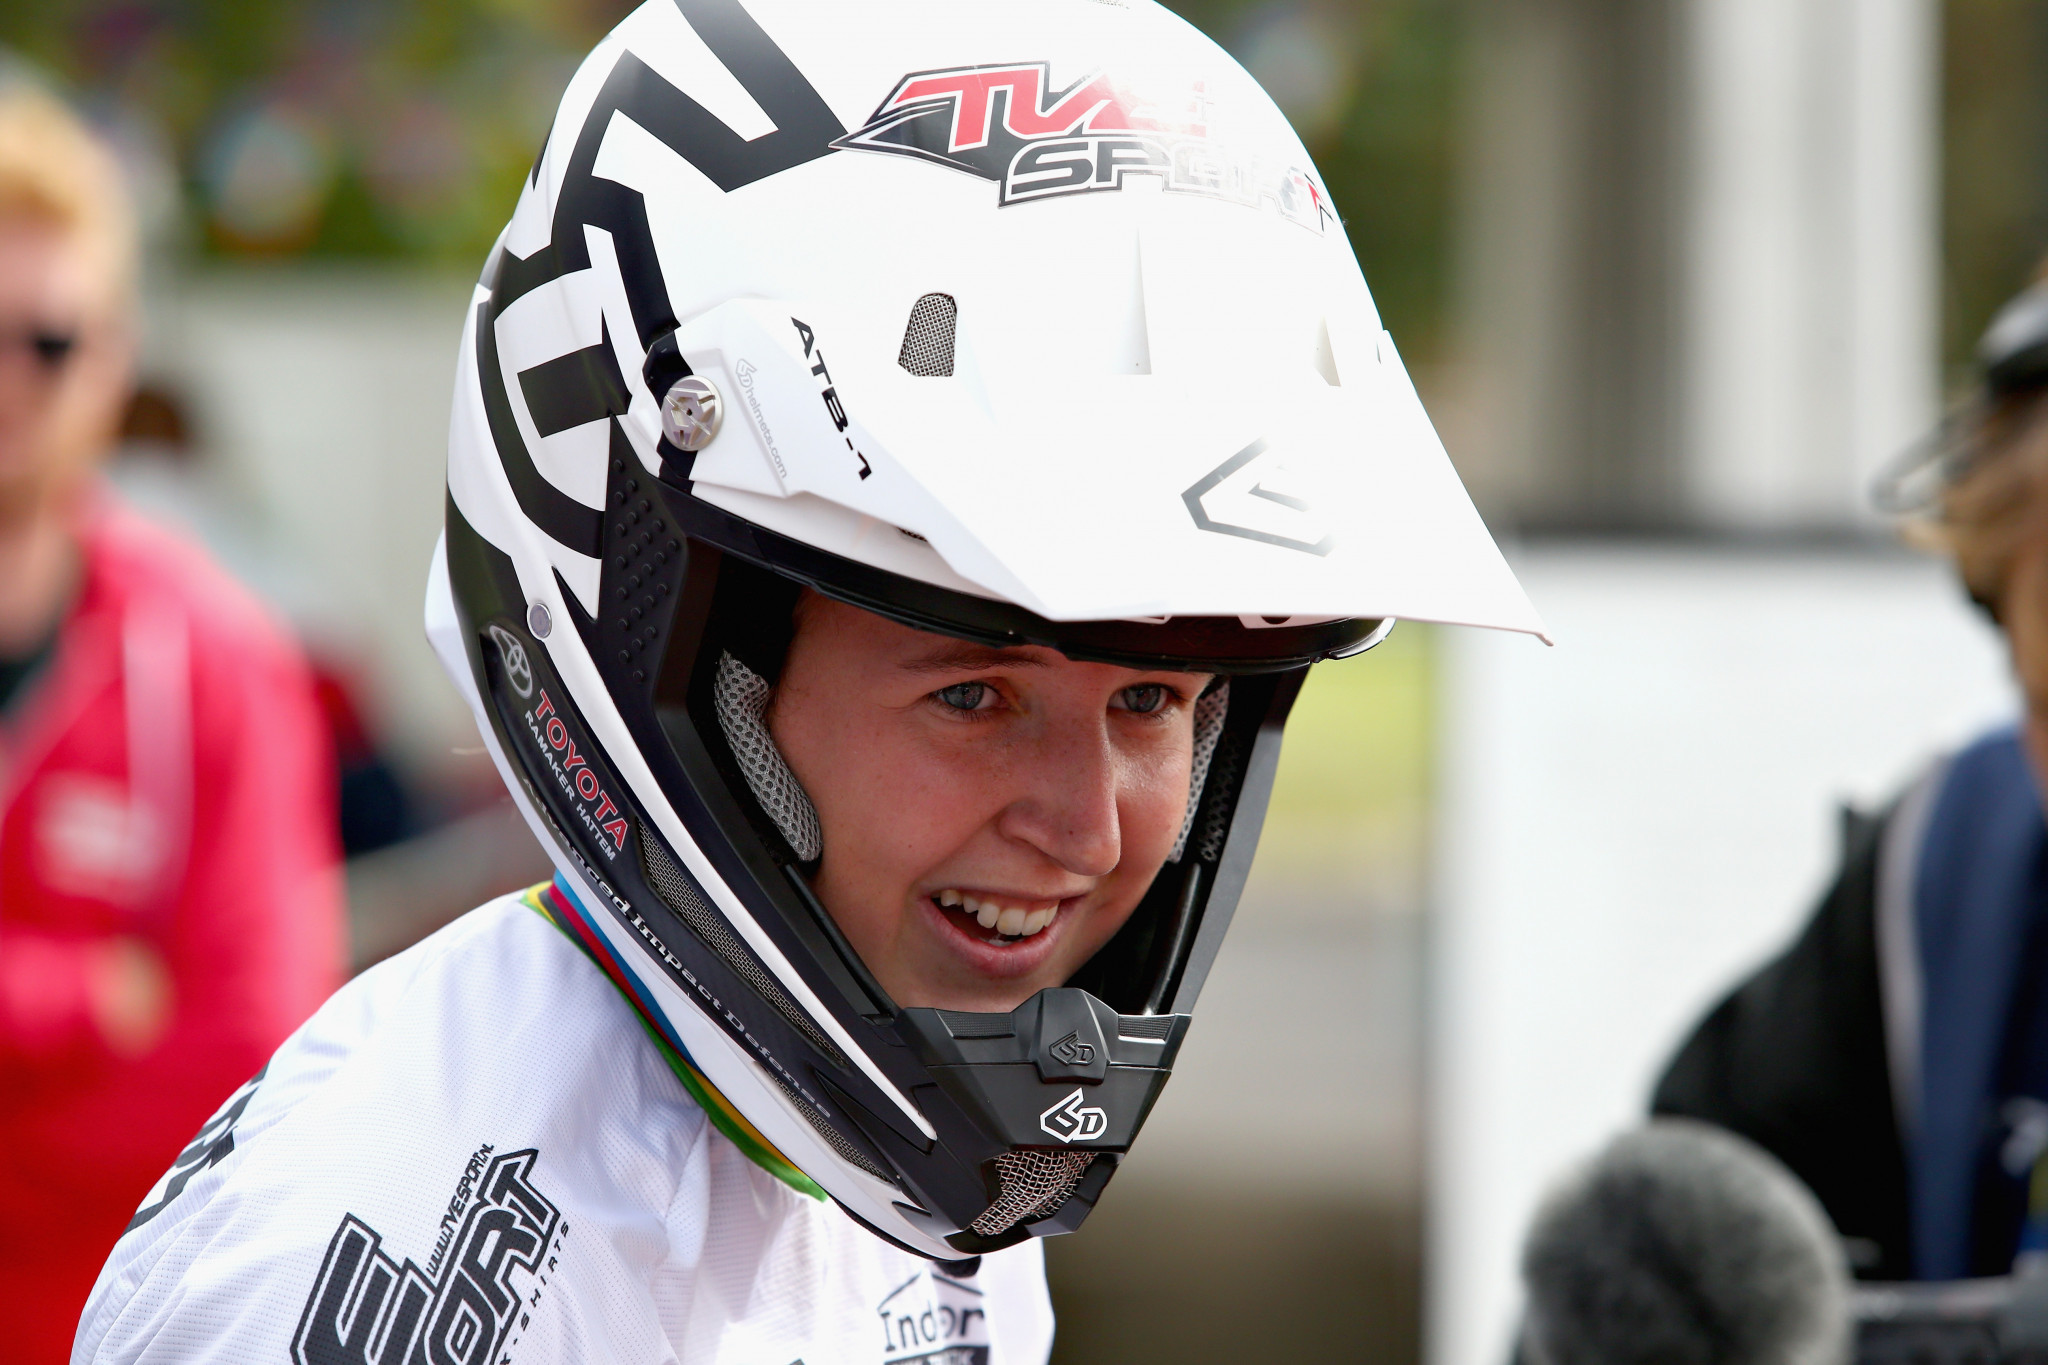 Smulders collects fourth European BMX title